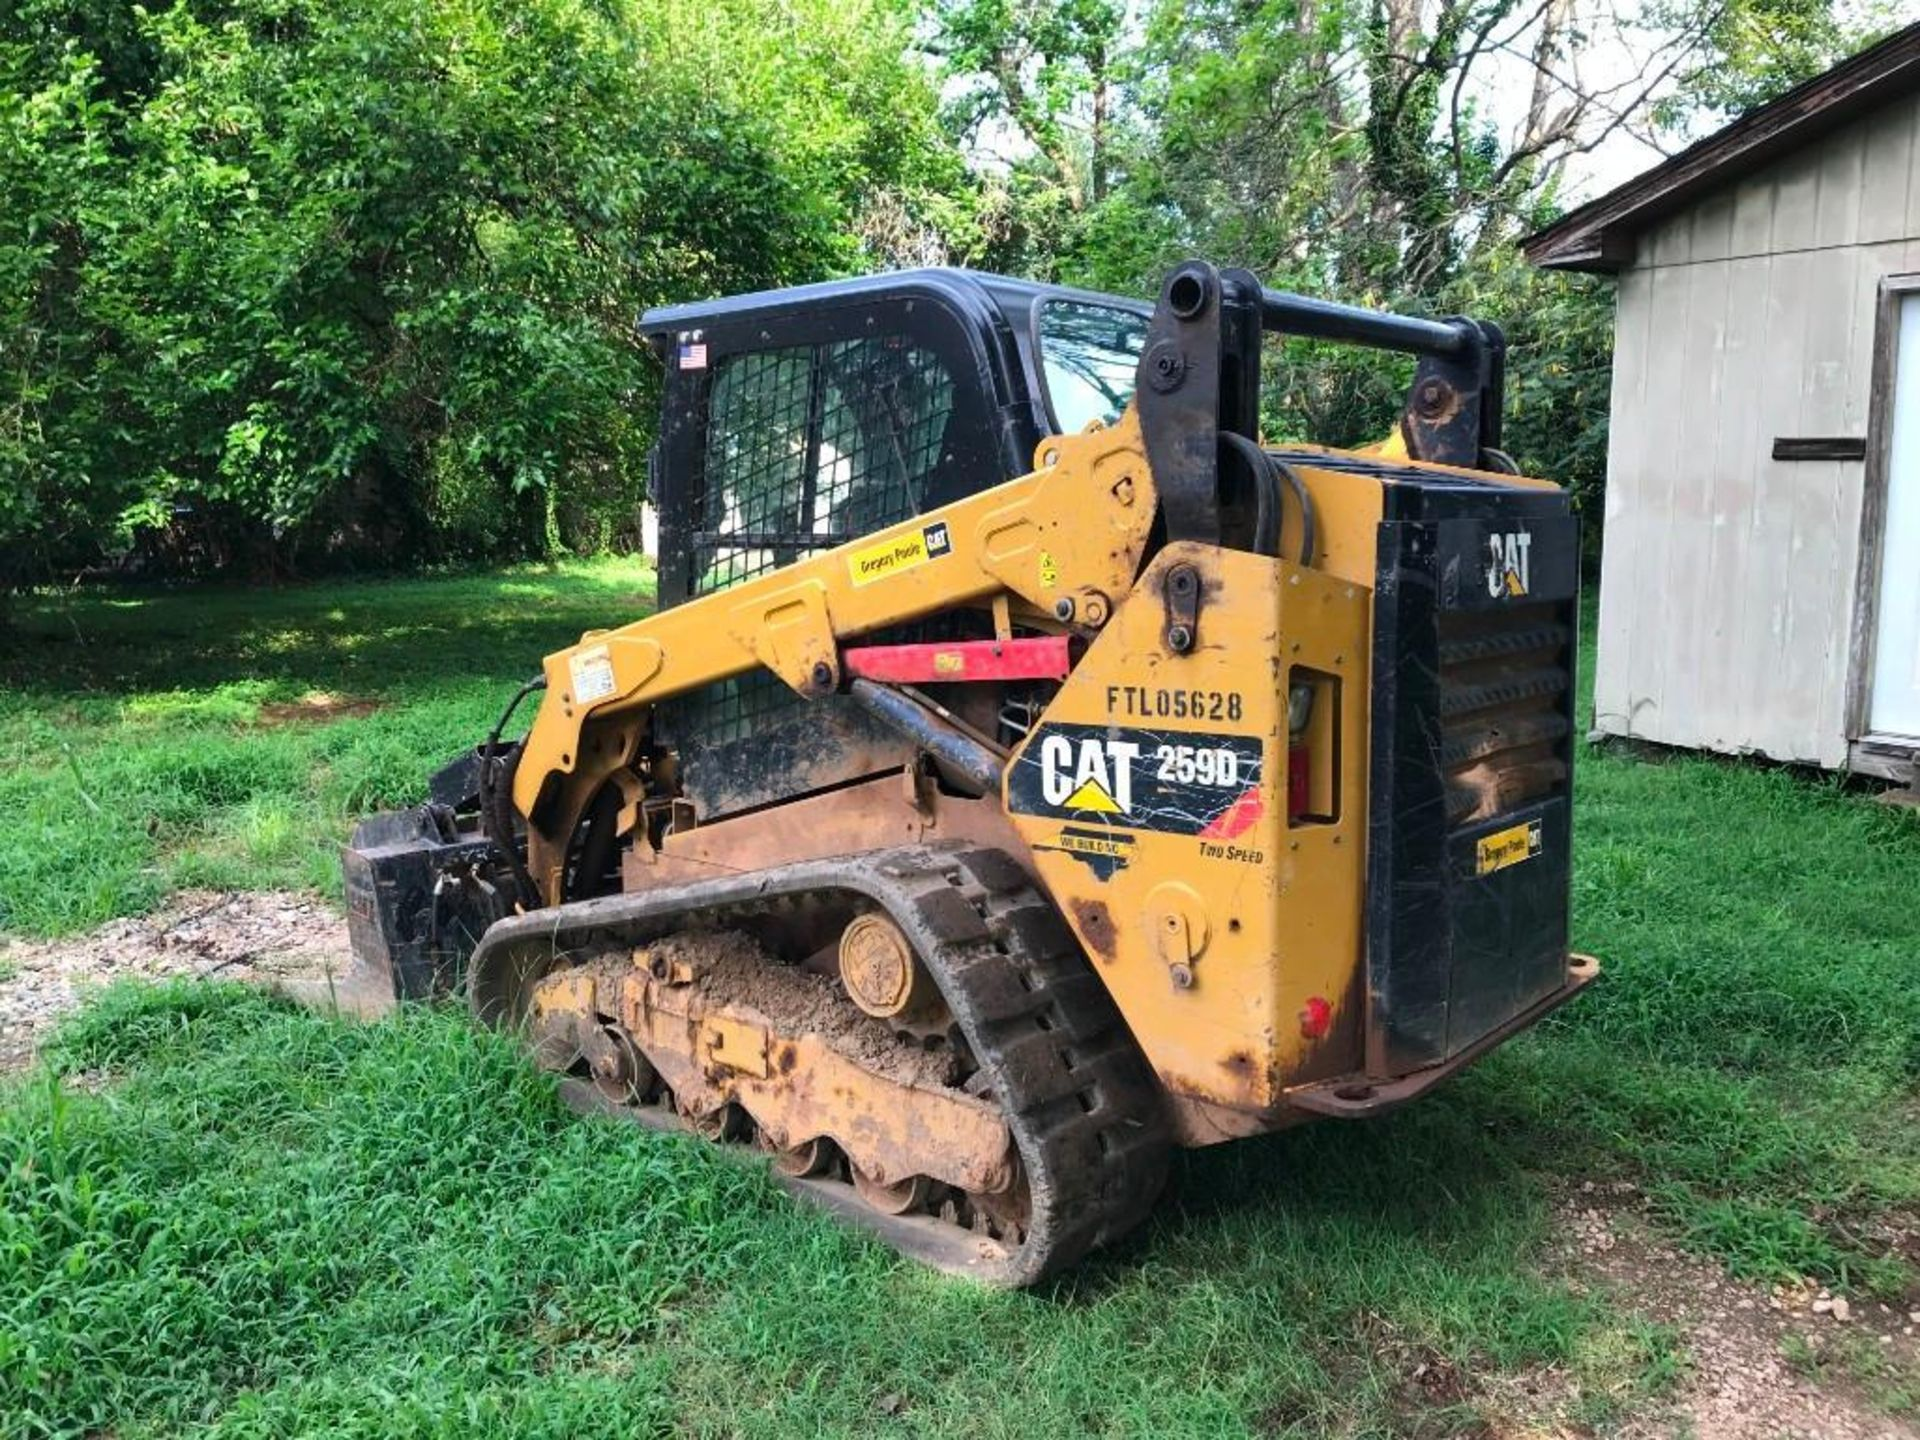 2016 CATERPILLAR 259D TWO SPEED TRACKED SKID STEER LOADER - Image 4 of 4